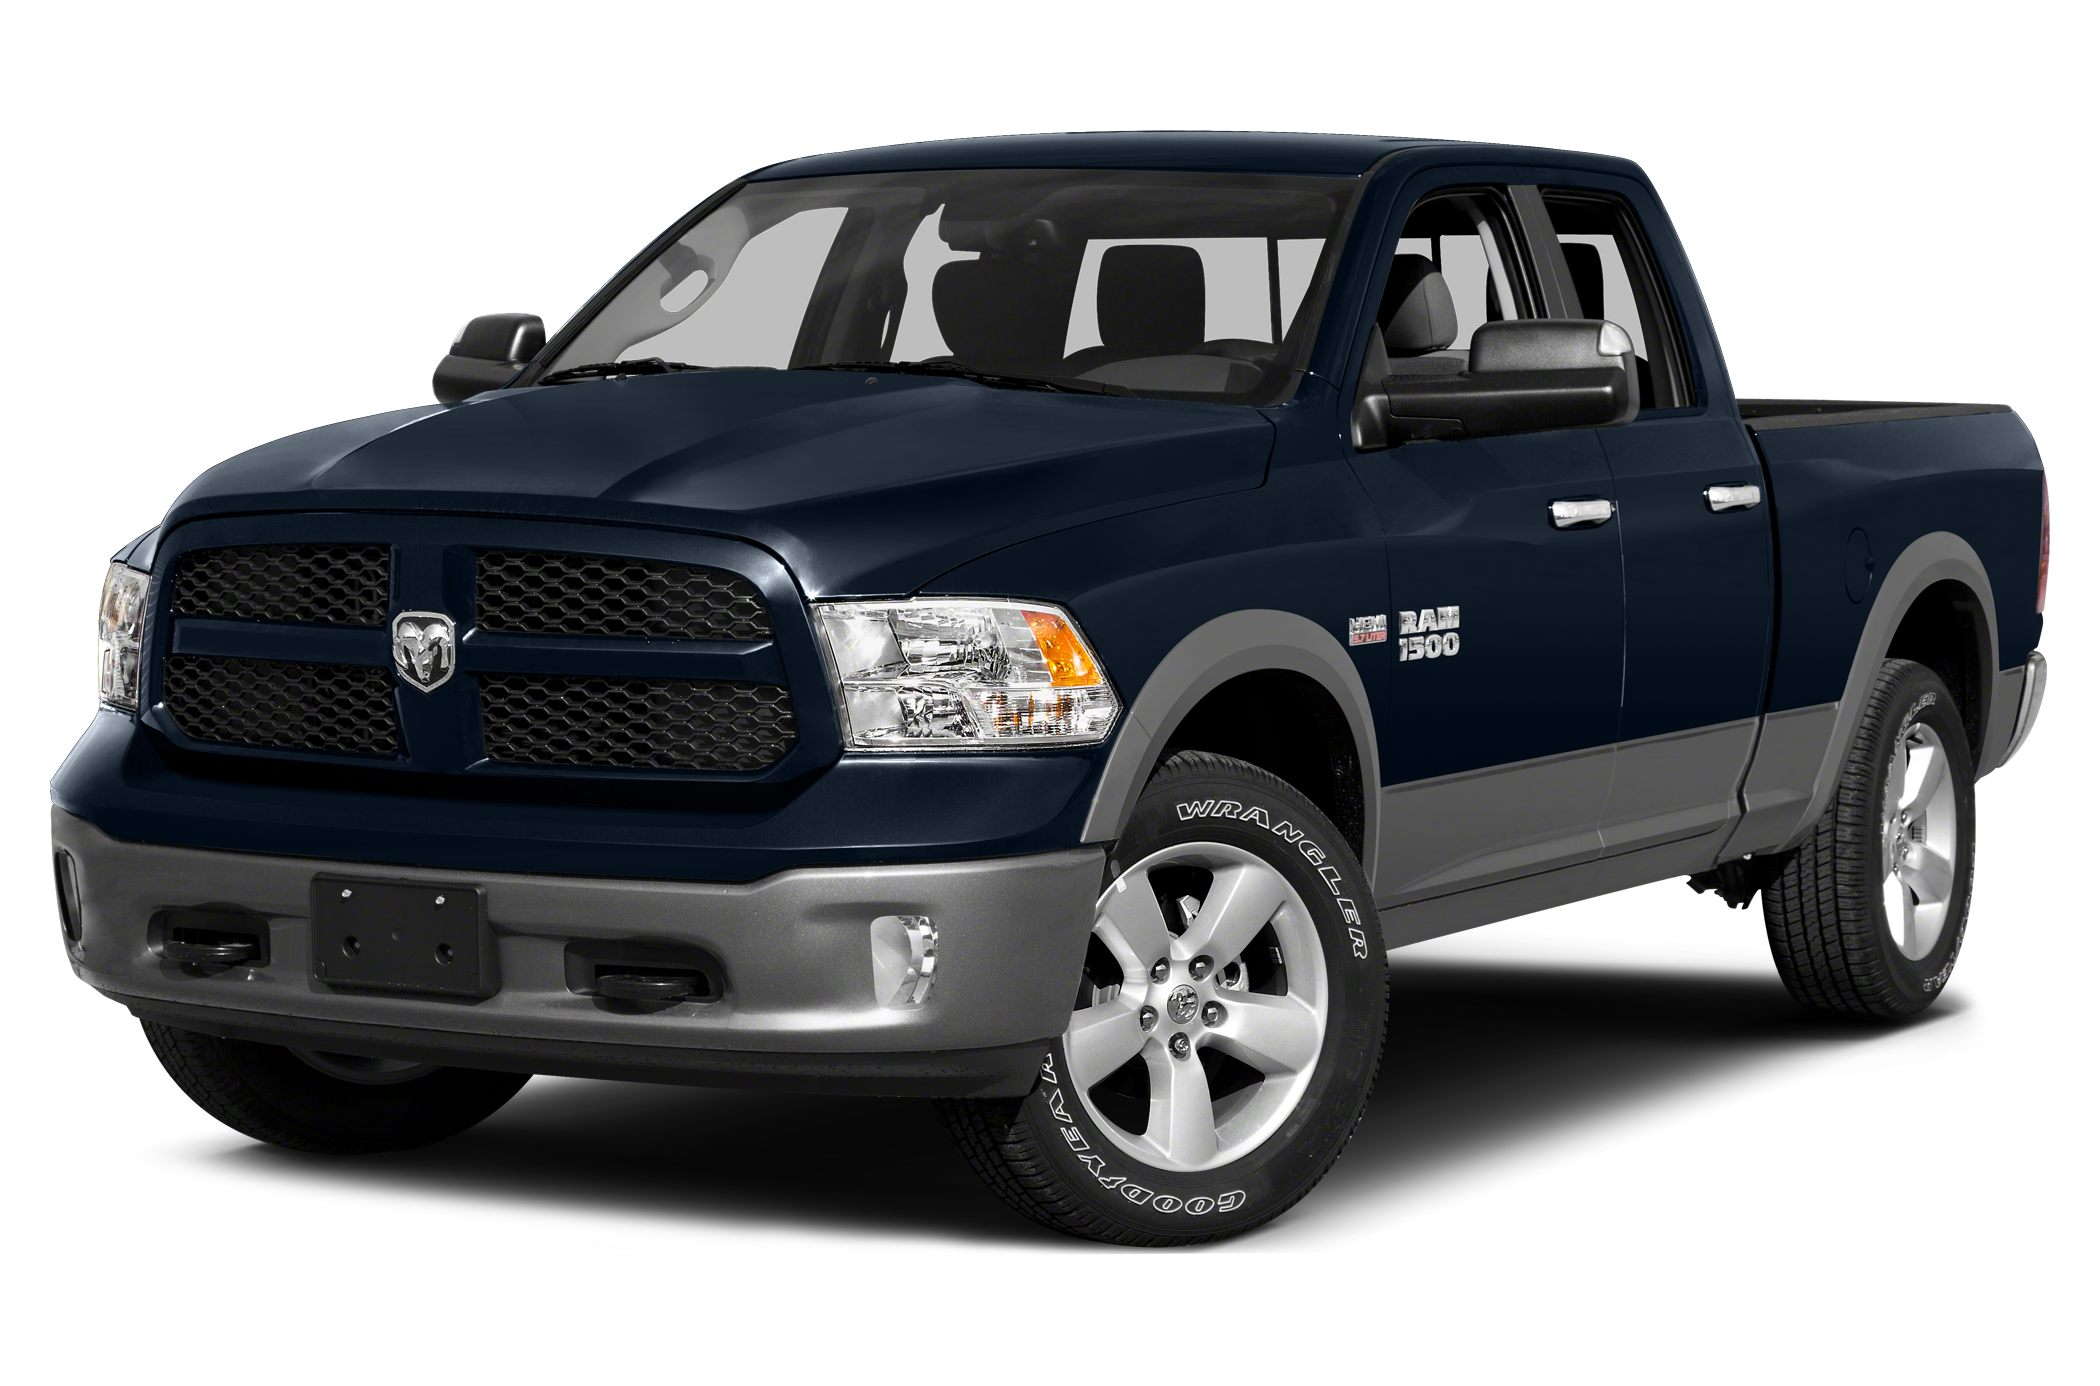 2014 RAM 1500 Laramie Crew Cab Pickup for sale in Renton for $41,633 with 35 miles.